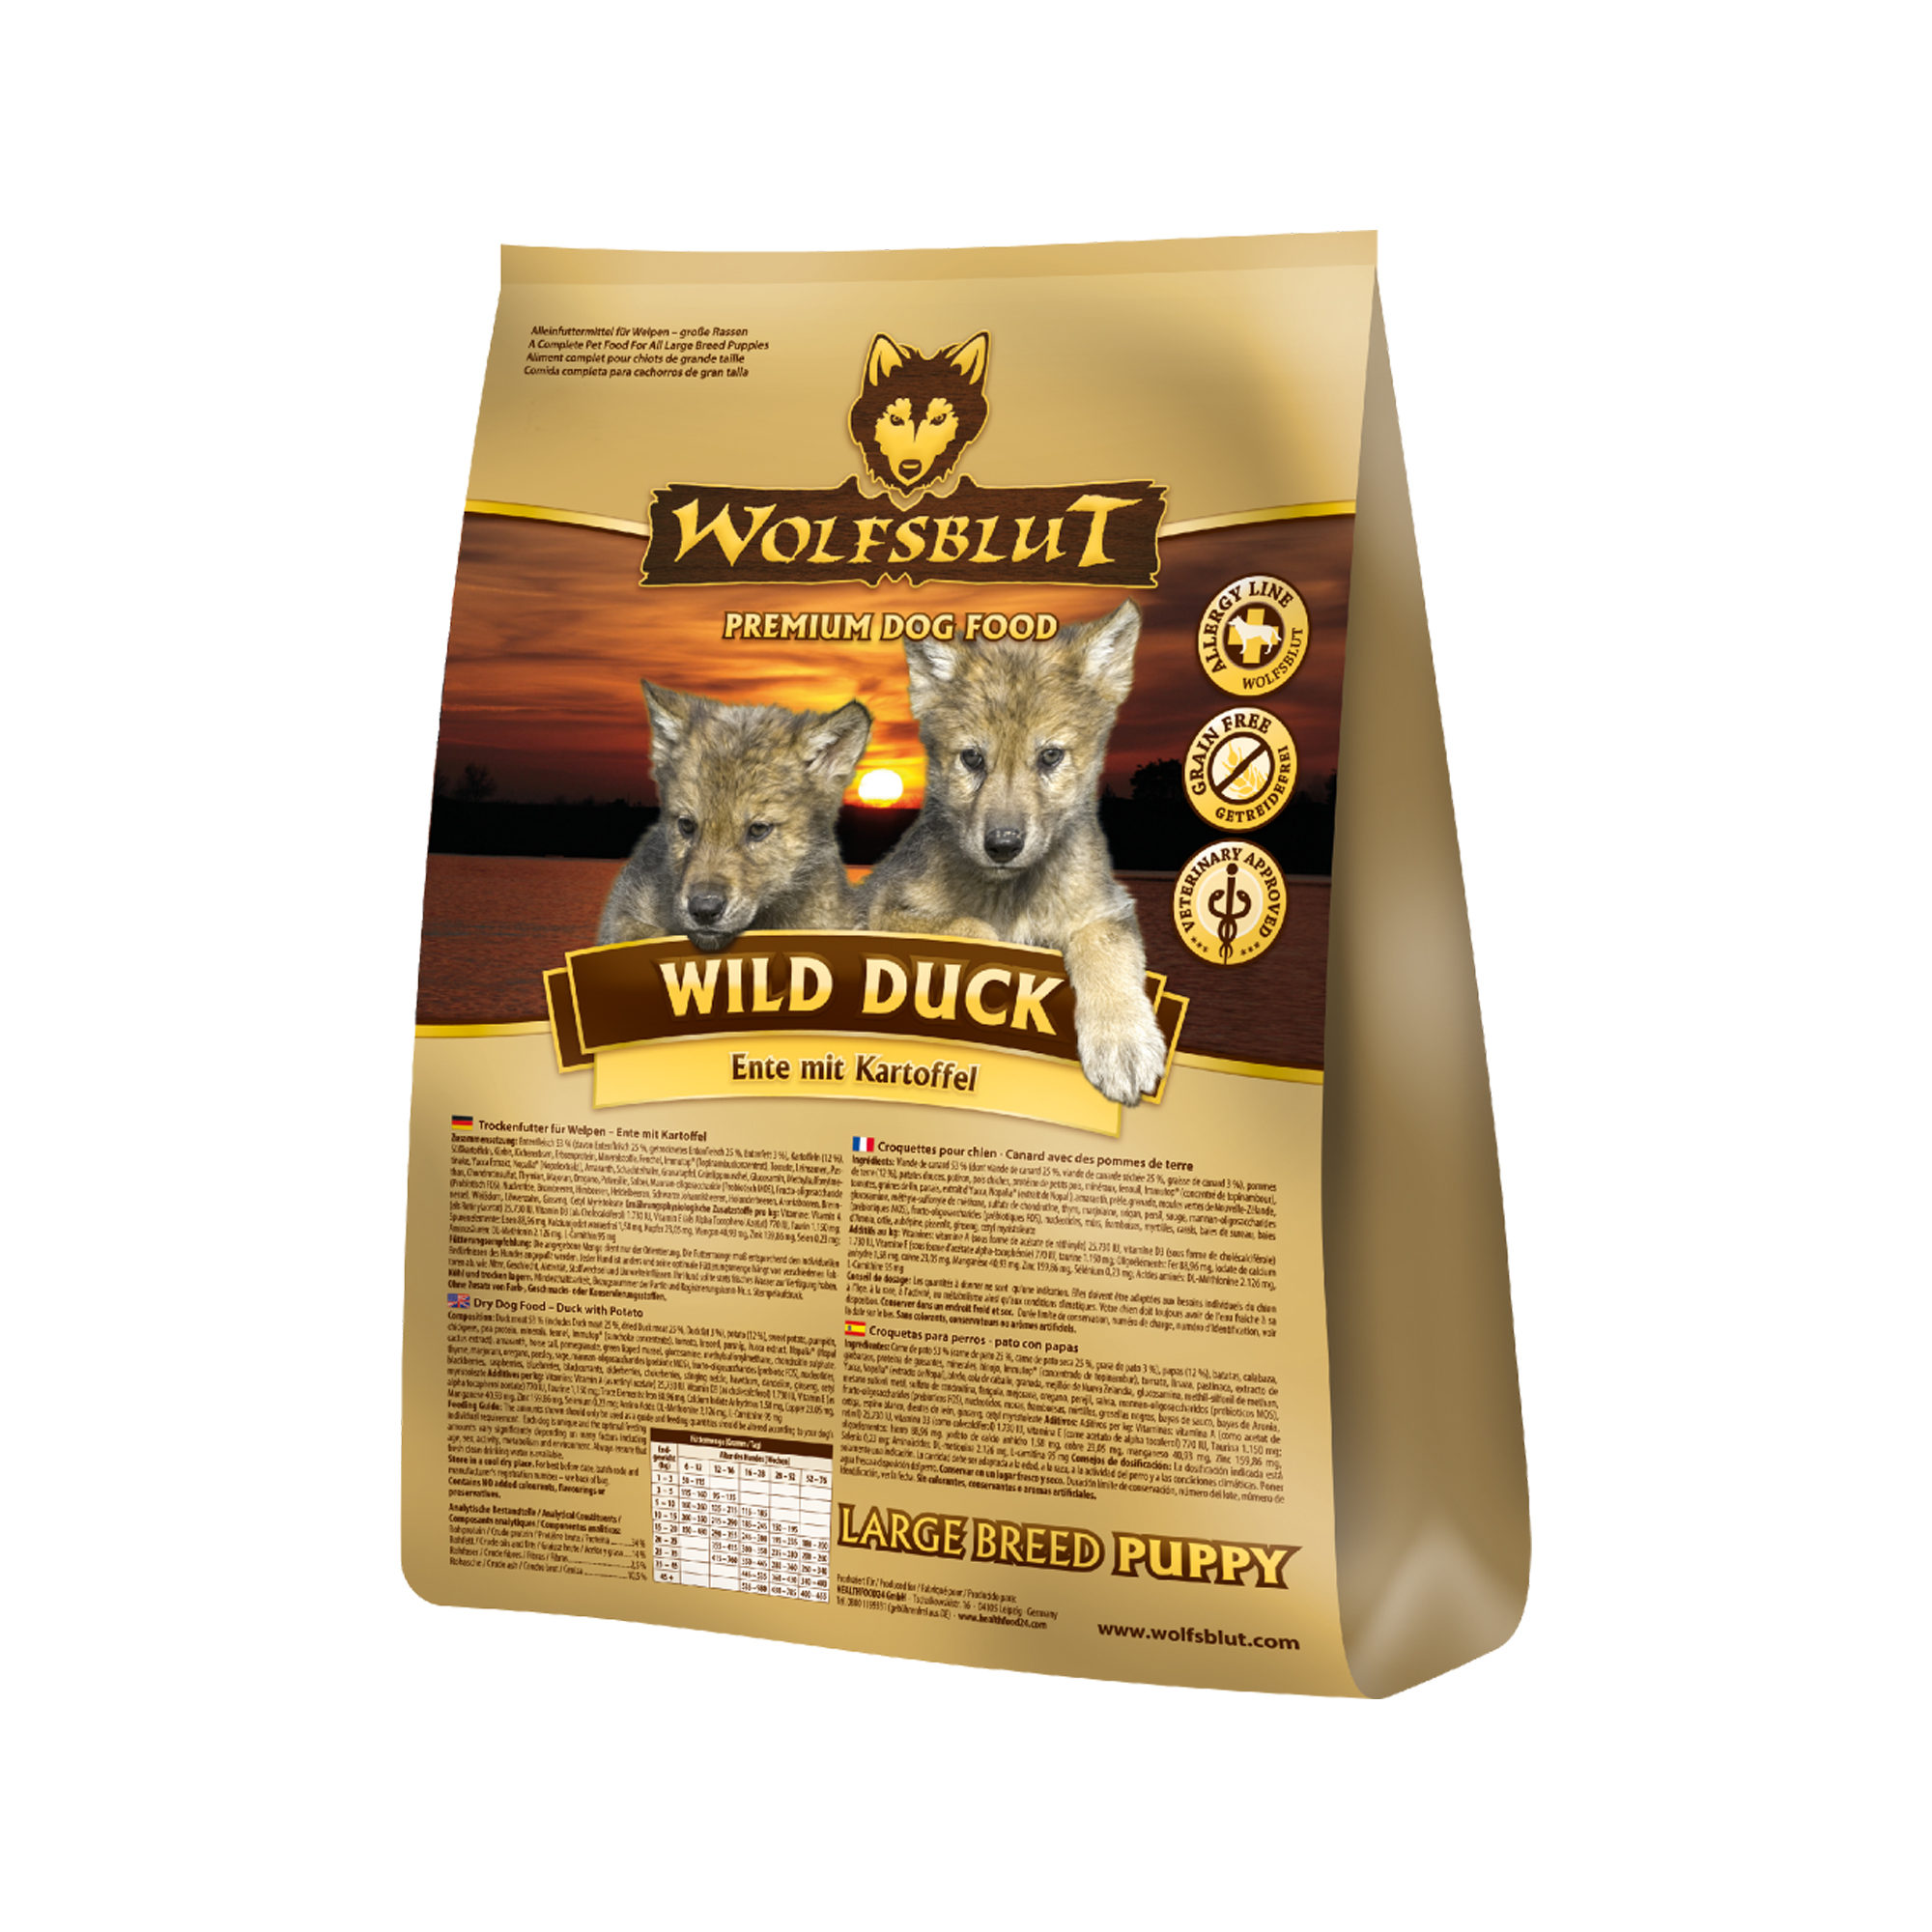 Wolfsblut Wild Duck Puppy Large Breed Hundefutter